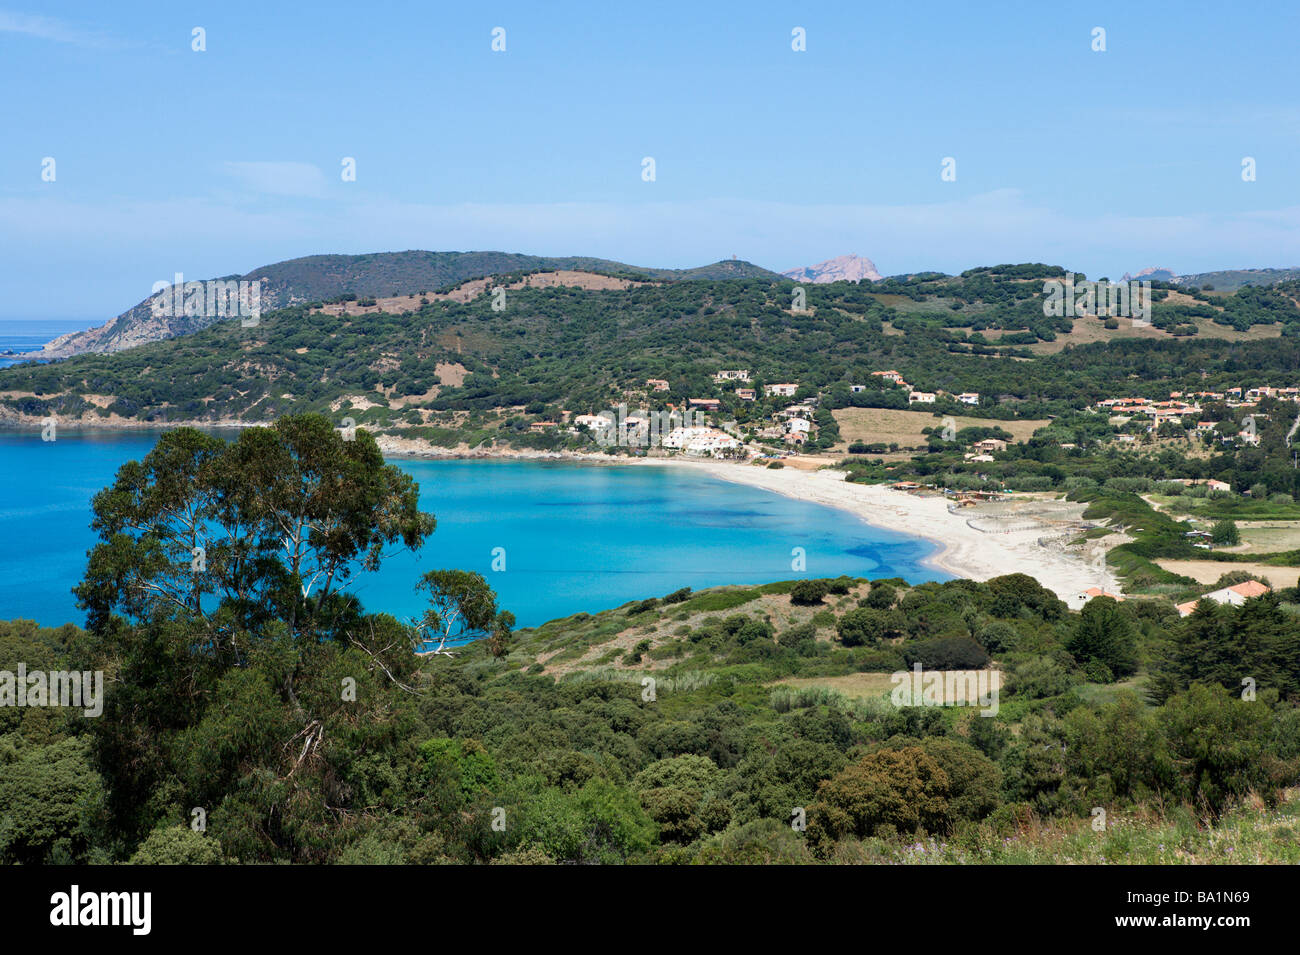 Beach at Cargese, Golfe de Sagone, Corsica, France - Stock Image